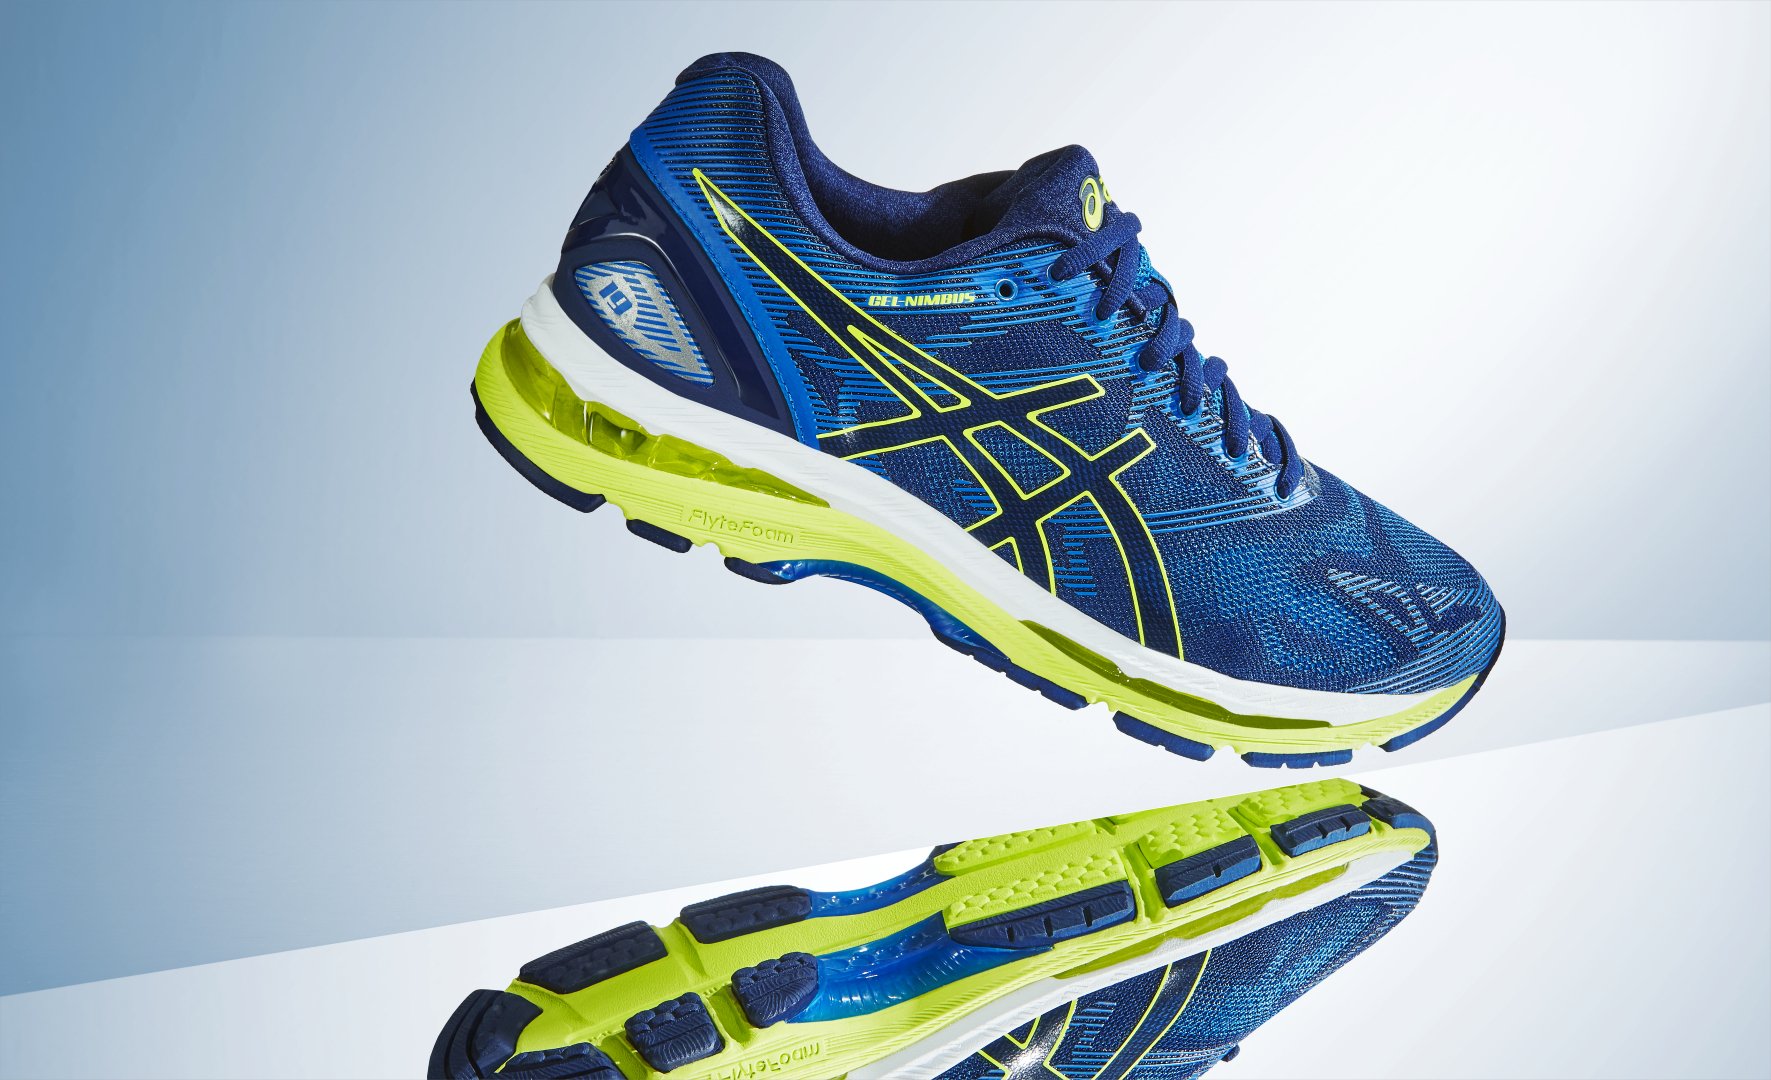 EVEN SOFTER AND EVEN LIGHTER: THE ASICS NIMBUS 19